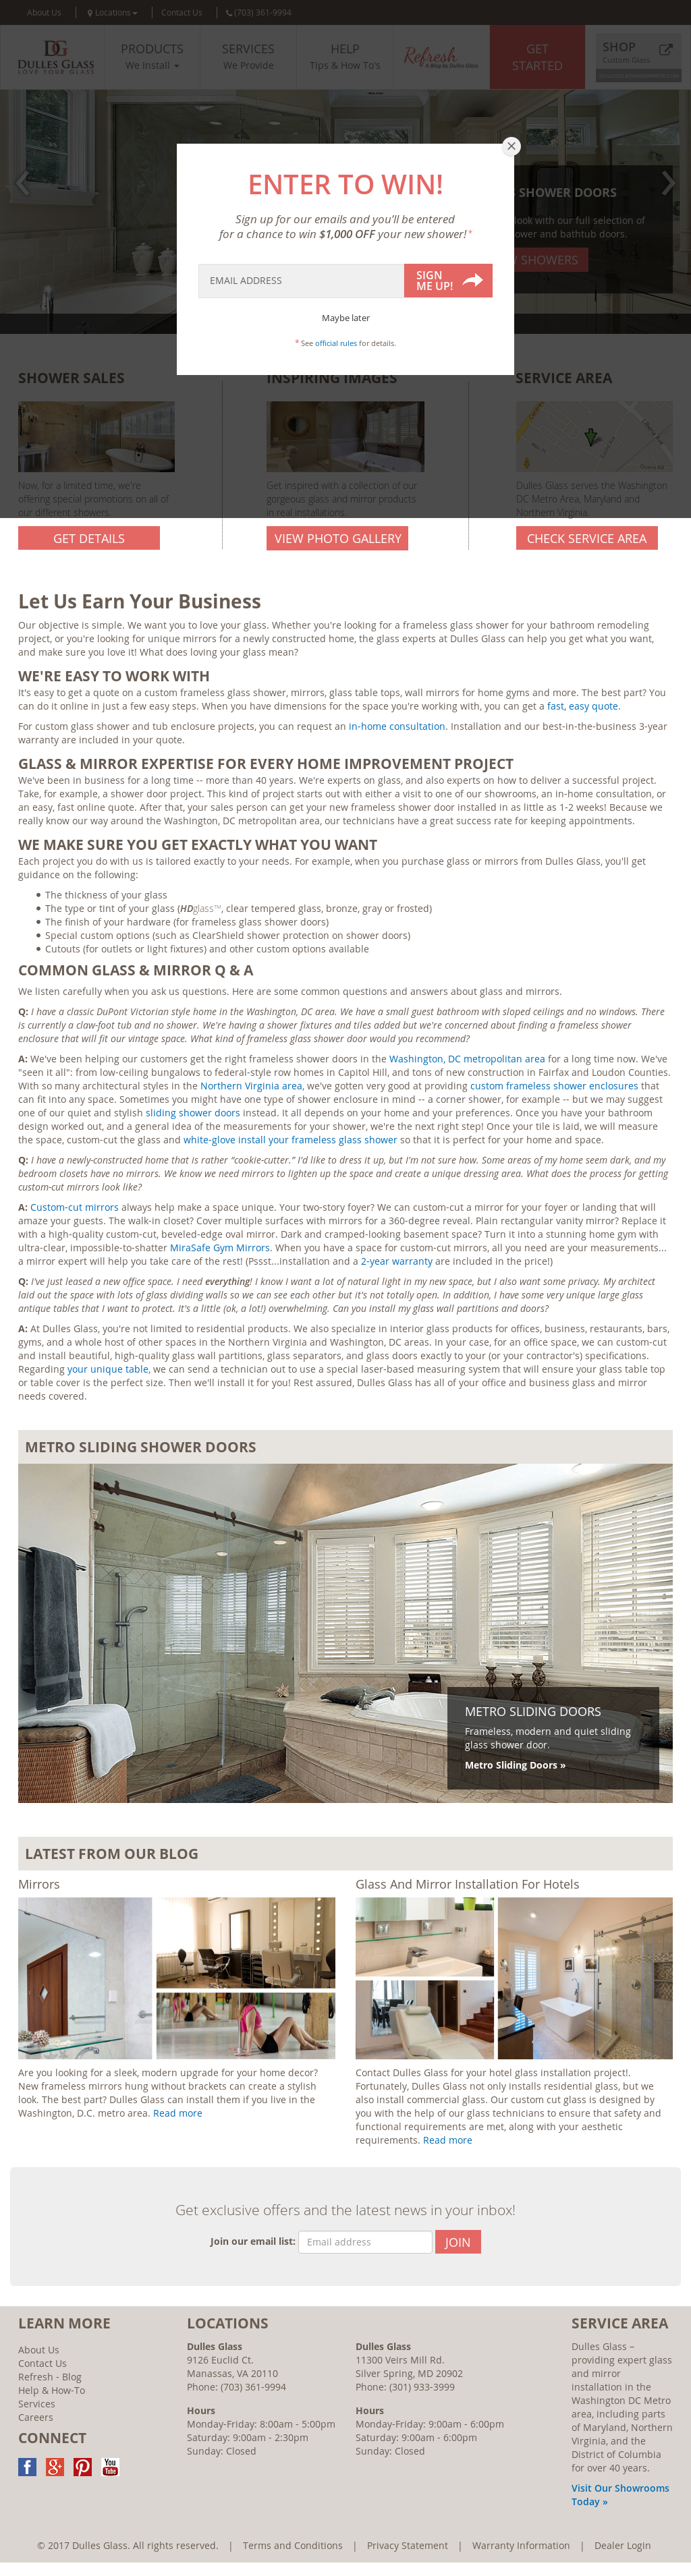 Dulles Glass And Mirror S Competitors Revenue Number Of Employees Funding Acquisitions News Owler Company Profile